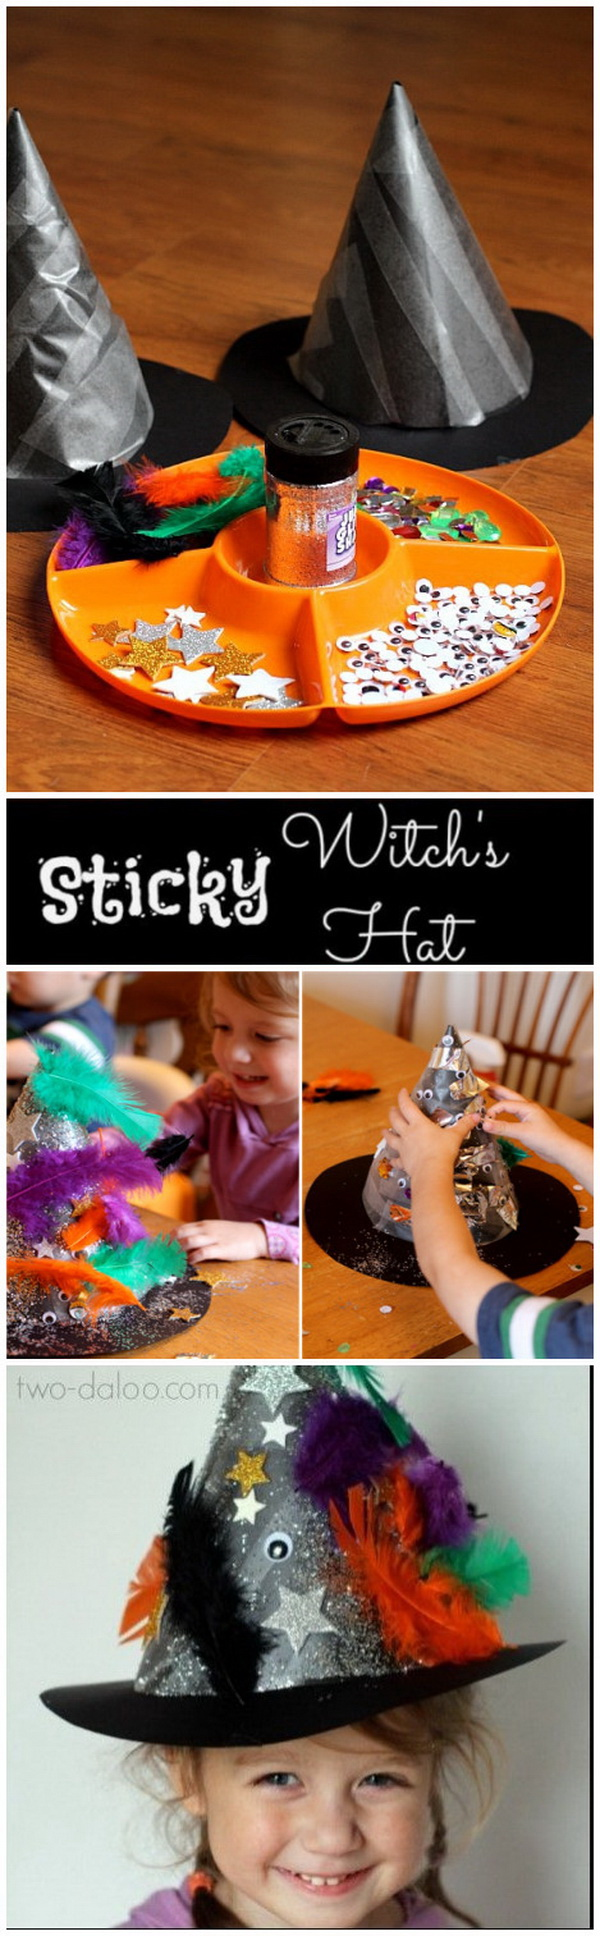 Sticky Witch Hat Toddler Craft. These sticky witch hats are made with contact paper, poster board, and collage materials! Kids big and small will have great fun in this craft!